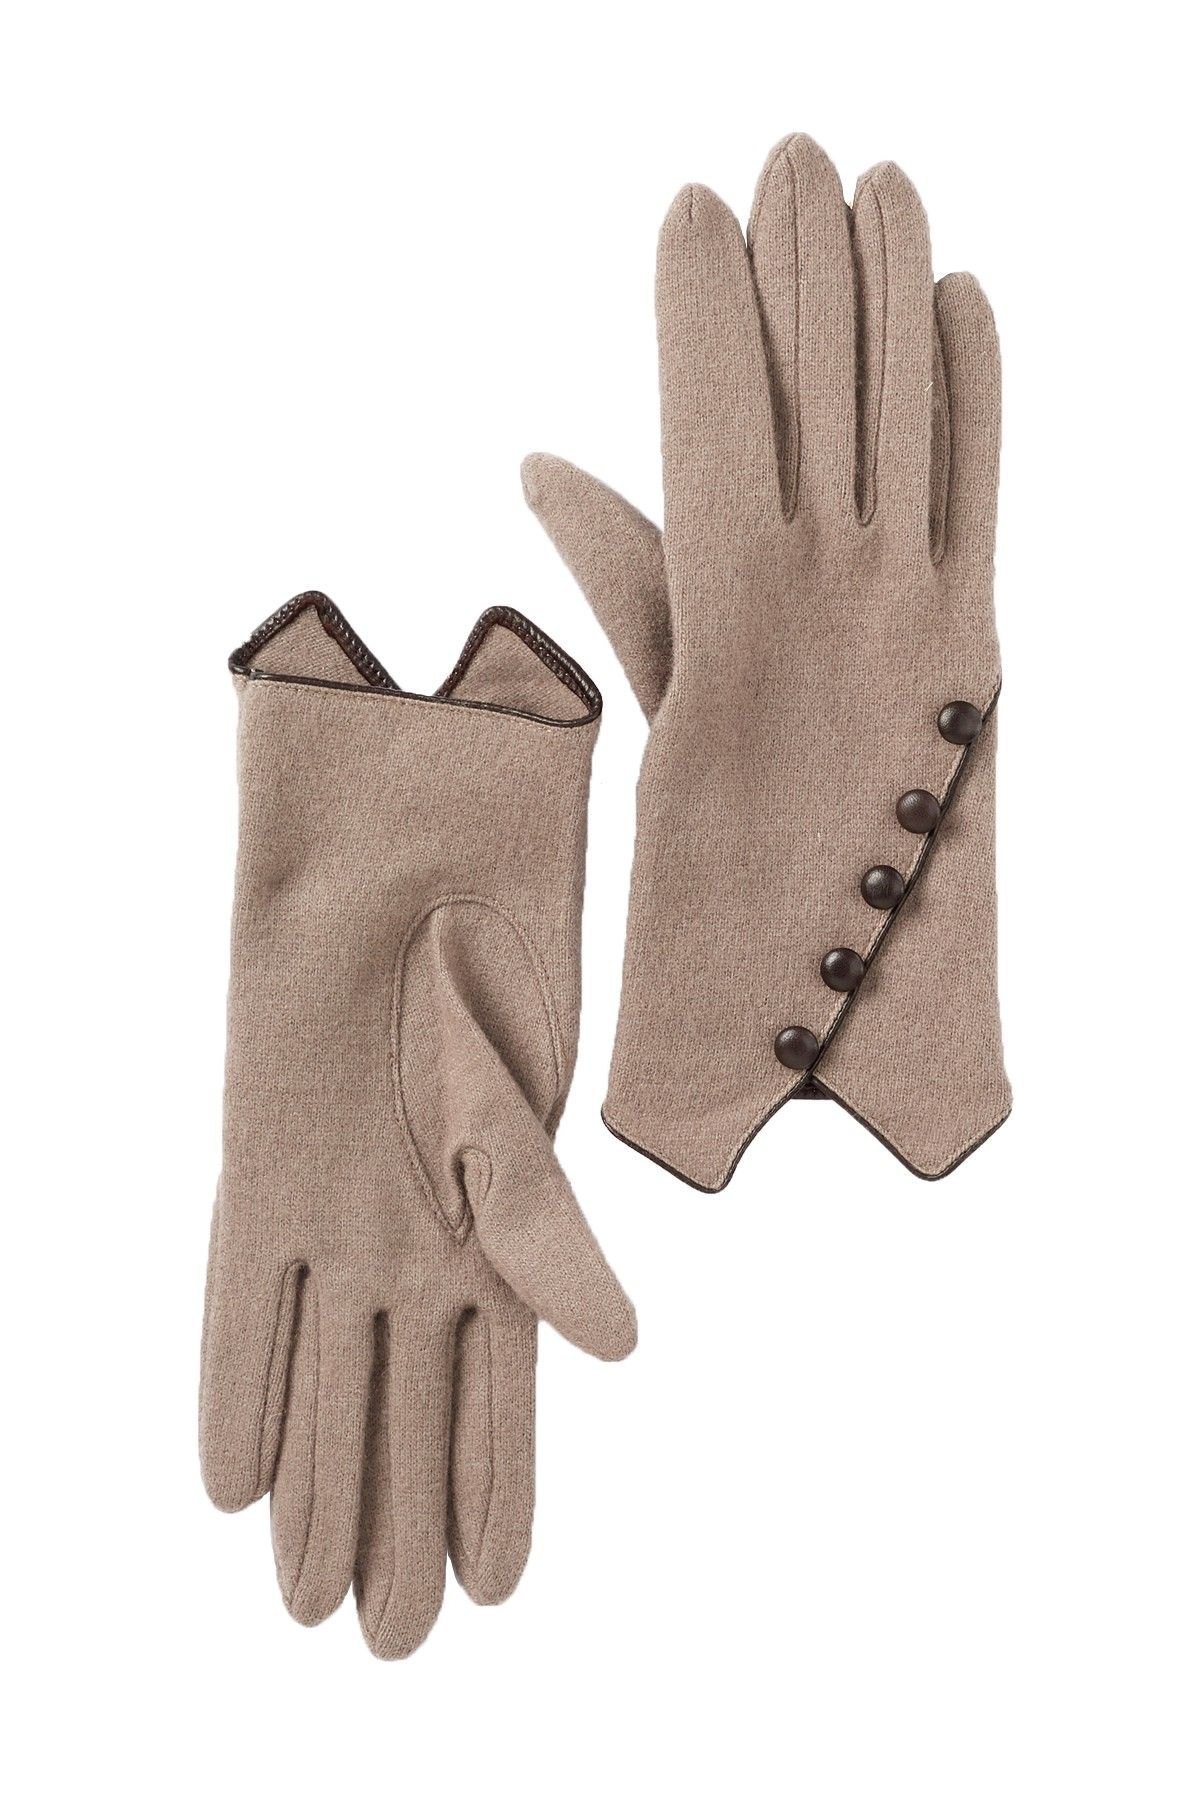 Mens driving gloves nordstroms - Multi Button Wool Gloves By Vincent Pradier On Nordstrom_rack Asym Button Back